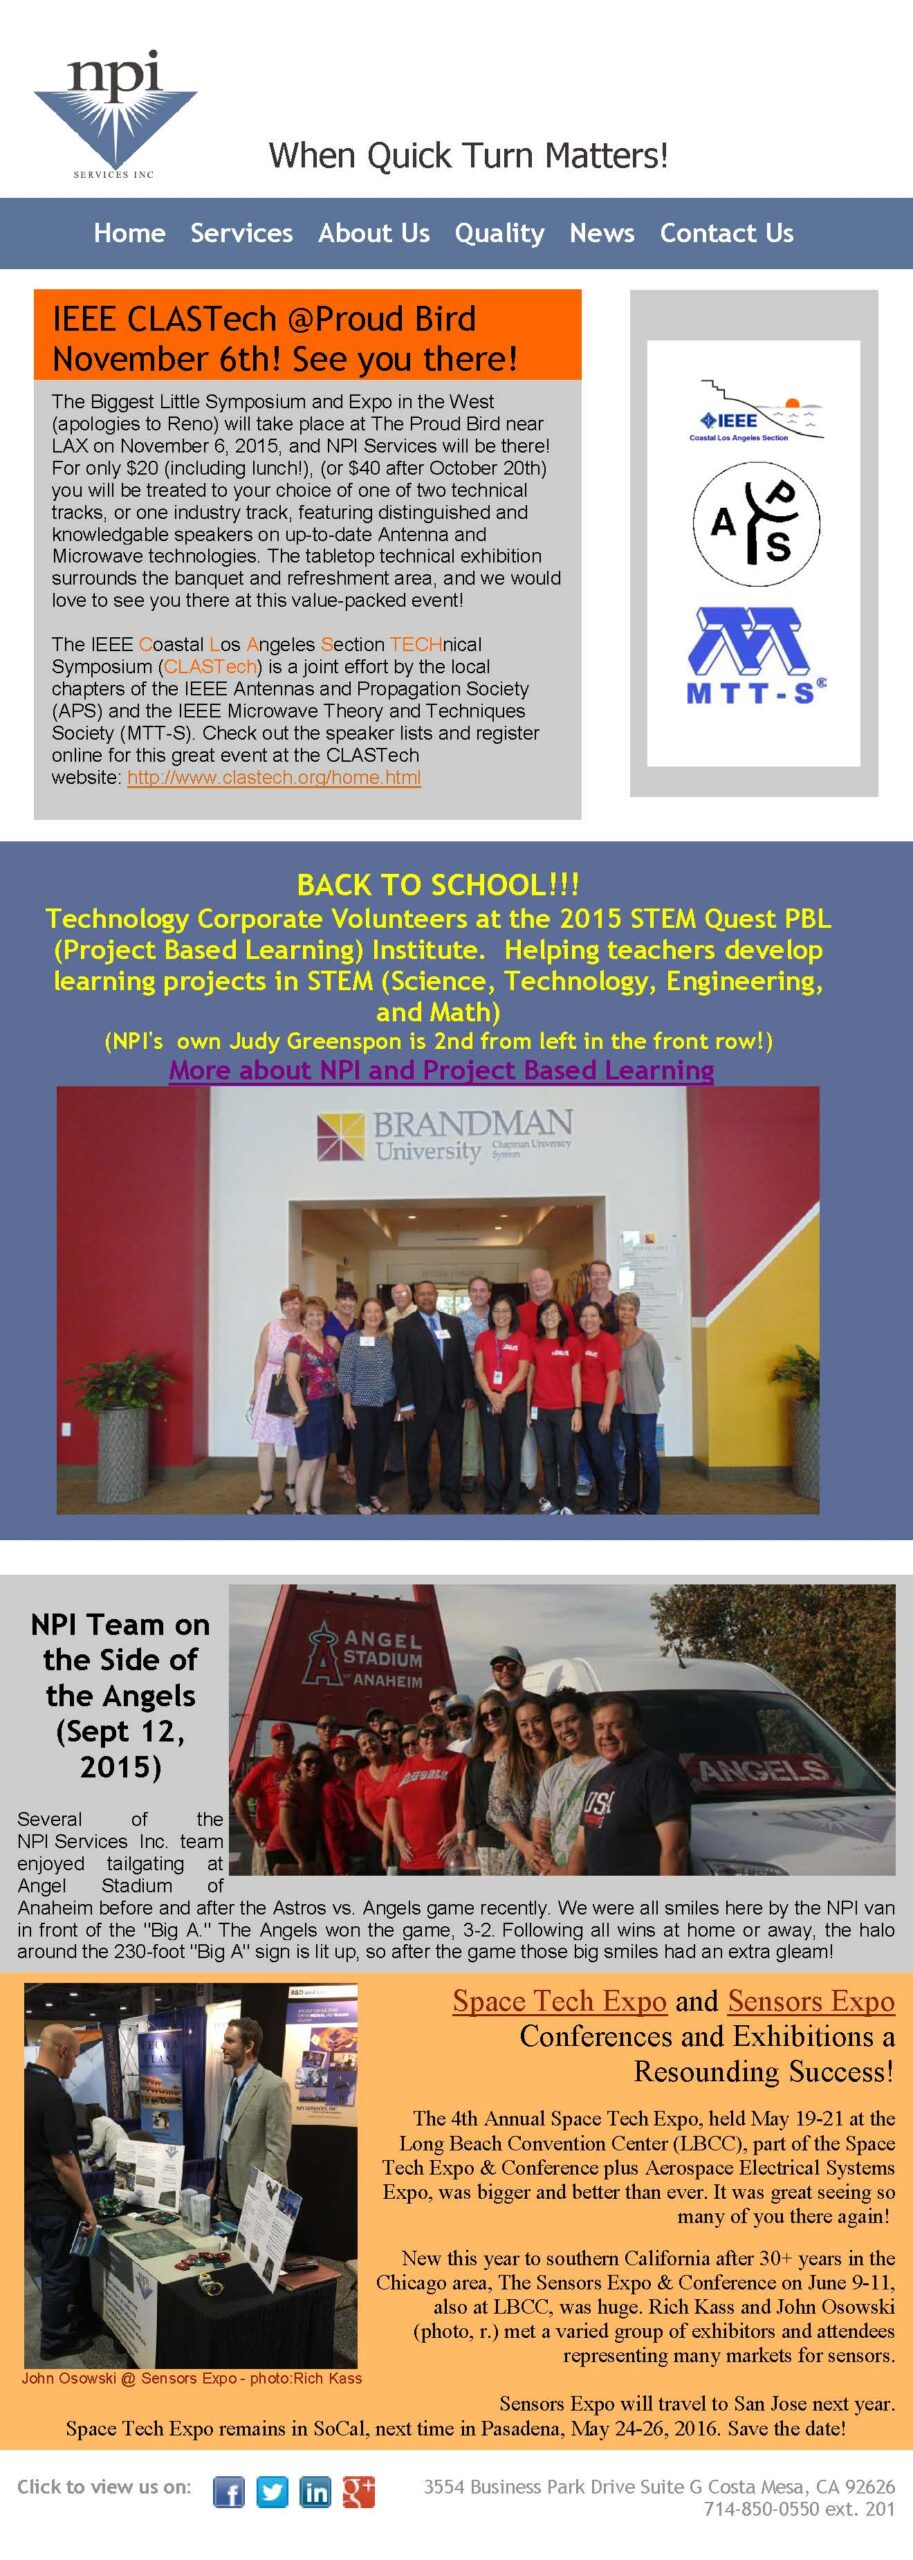 NPI at IEEE CLASTech Space Tech Expo Sensors Expo STEM Quest PBL and Angel Stadium scaled